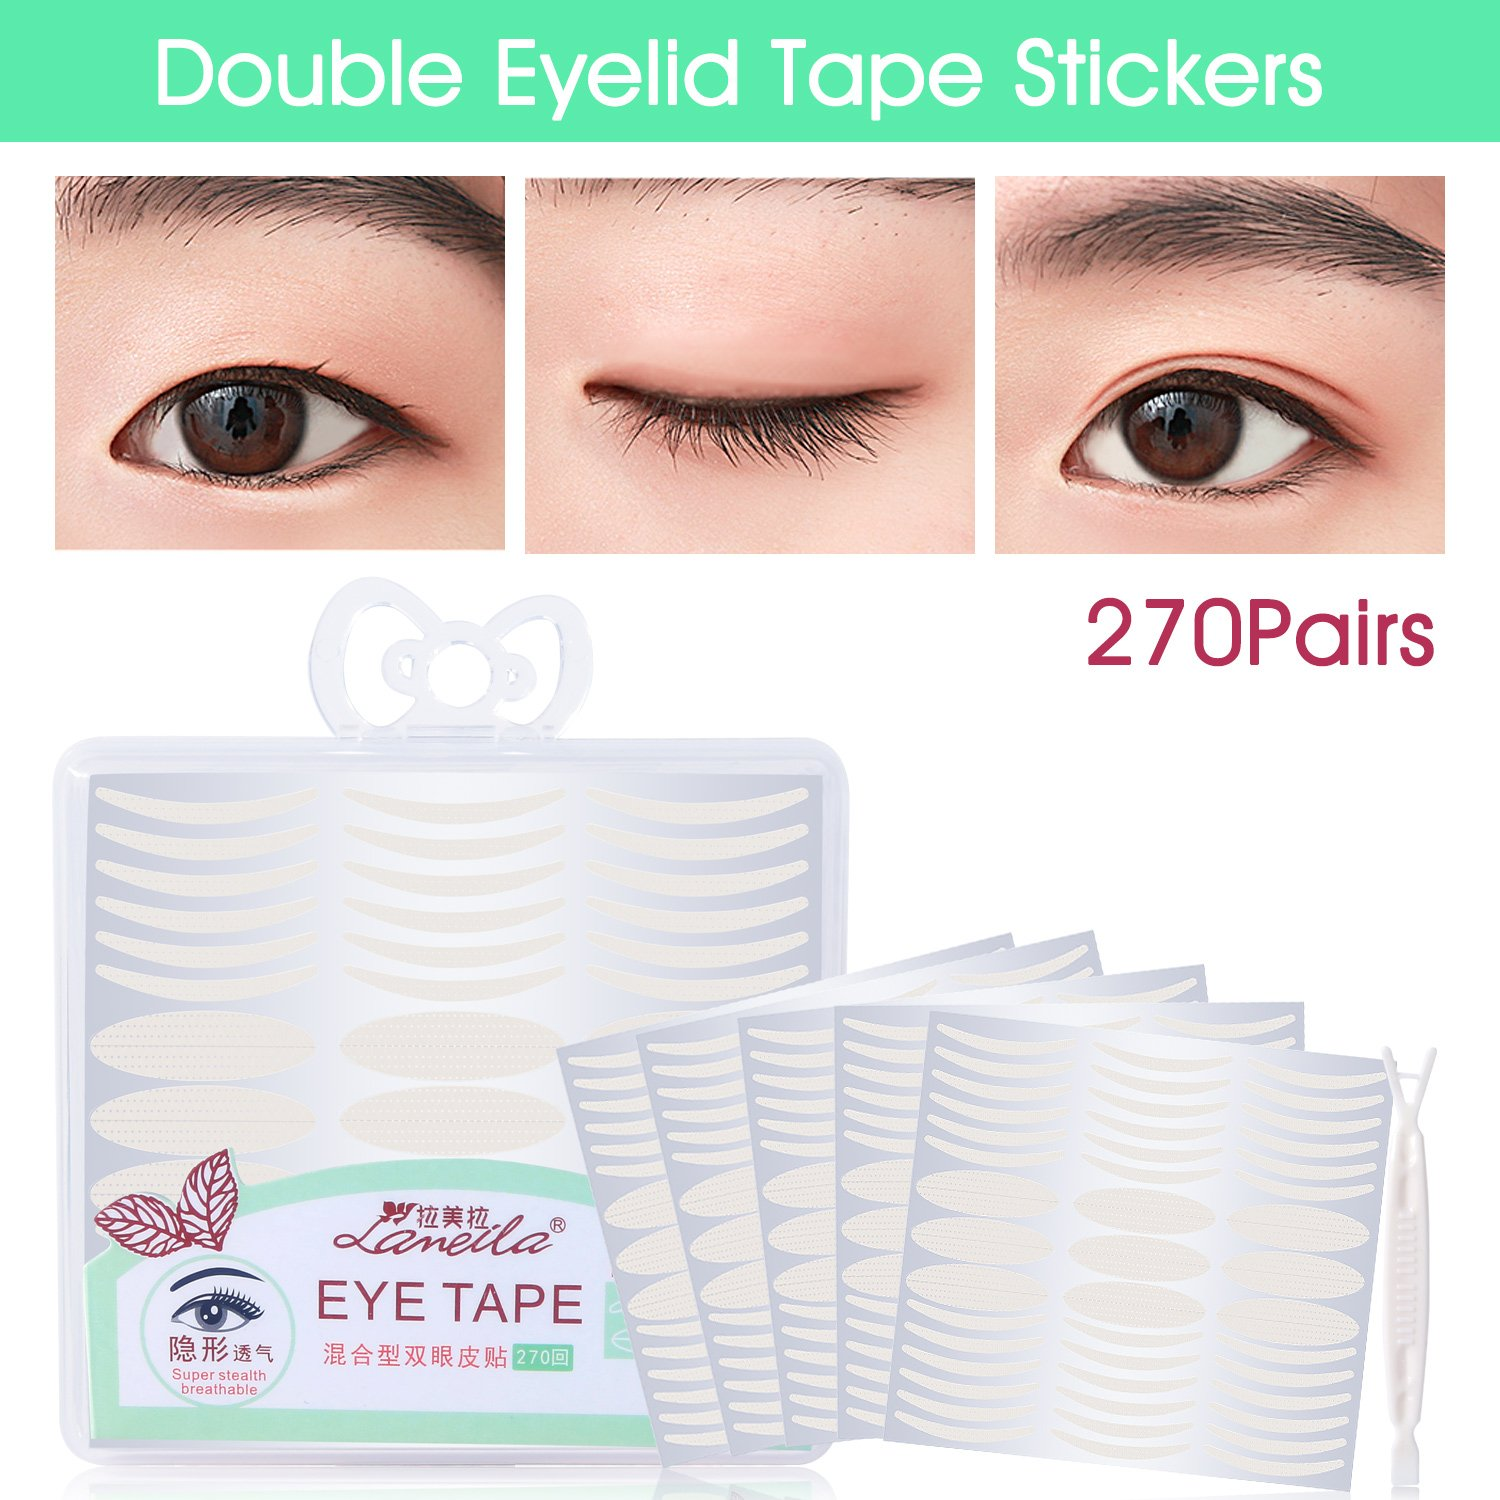 Lameila Ultra Invisible Fiber Double Eyelid Tape Stickers Instant